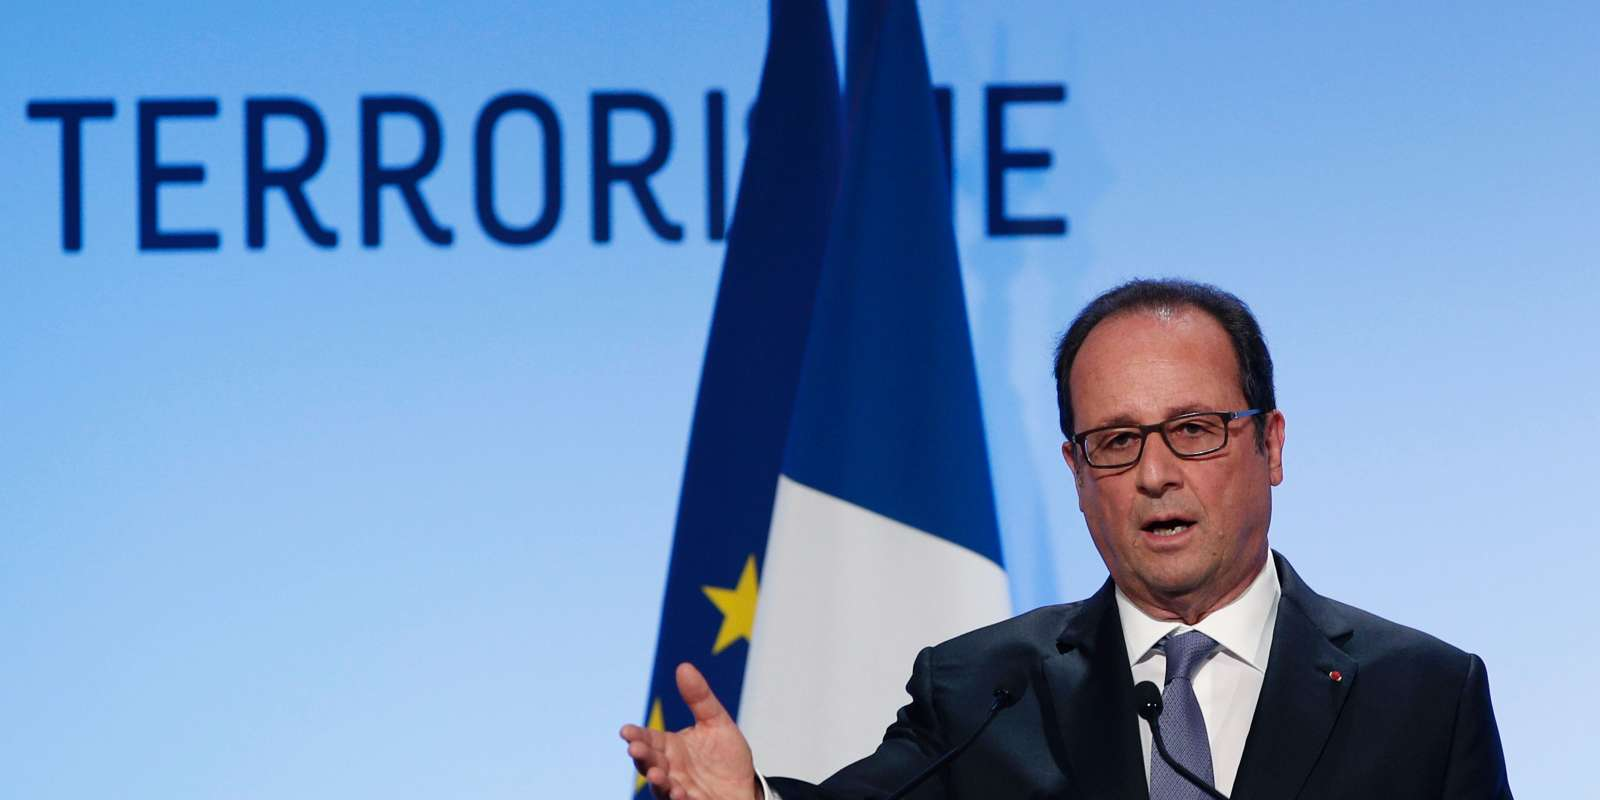 French President Francois Hollande delivers a speech about democracy and terrorism on September 8, 2016 in Paris. President Francois Hollande insisted on September 8, 2016, that France's strict laws separating church and state did not mean the country's large Muslim minority could not practise their religion. In a speech on terrorism and democracy coming hot on the heels of a debate on the banning of the Islamic burkini swimsuit, Hollande said: